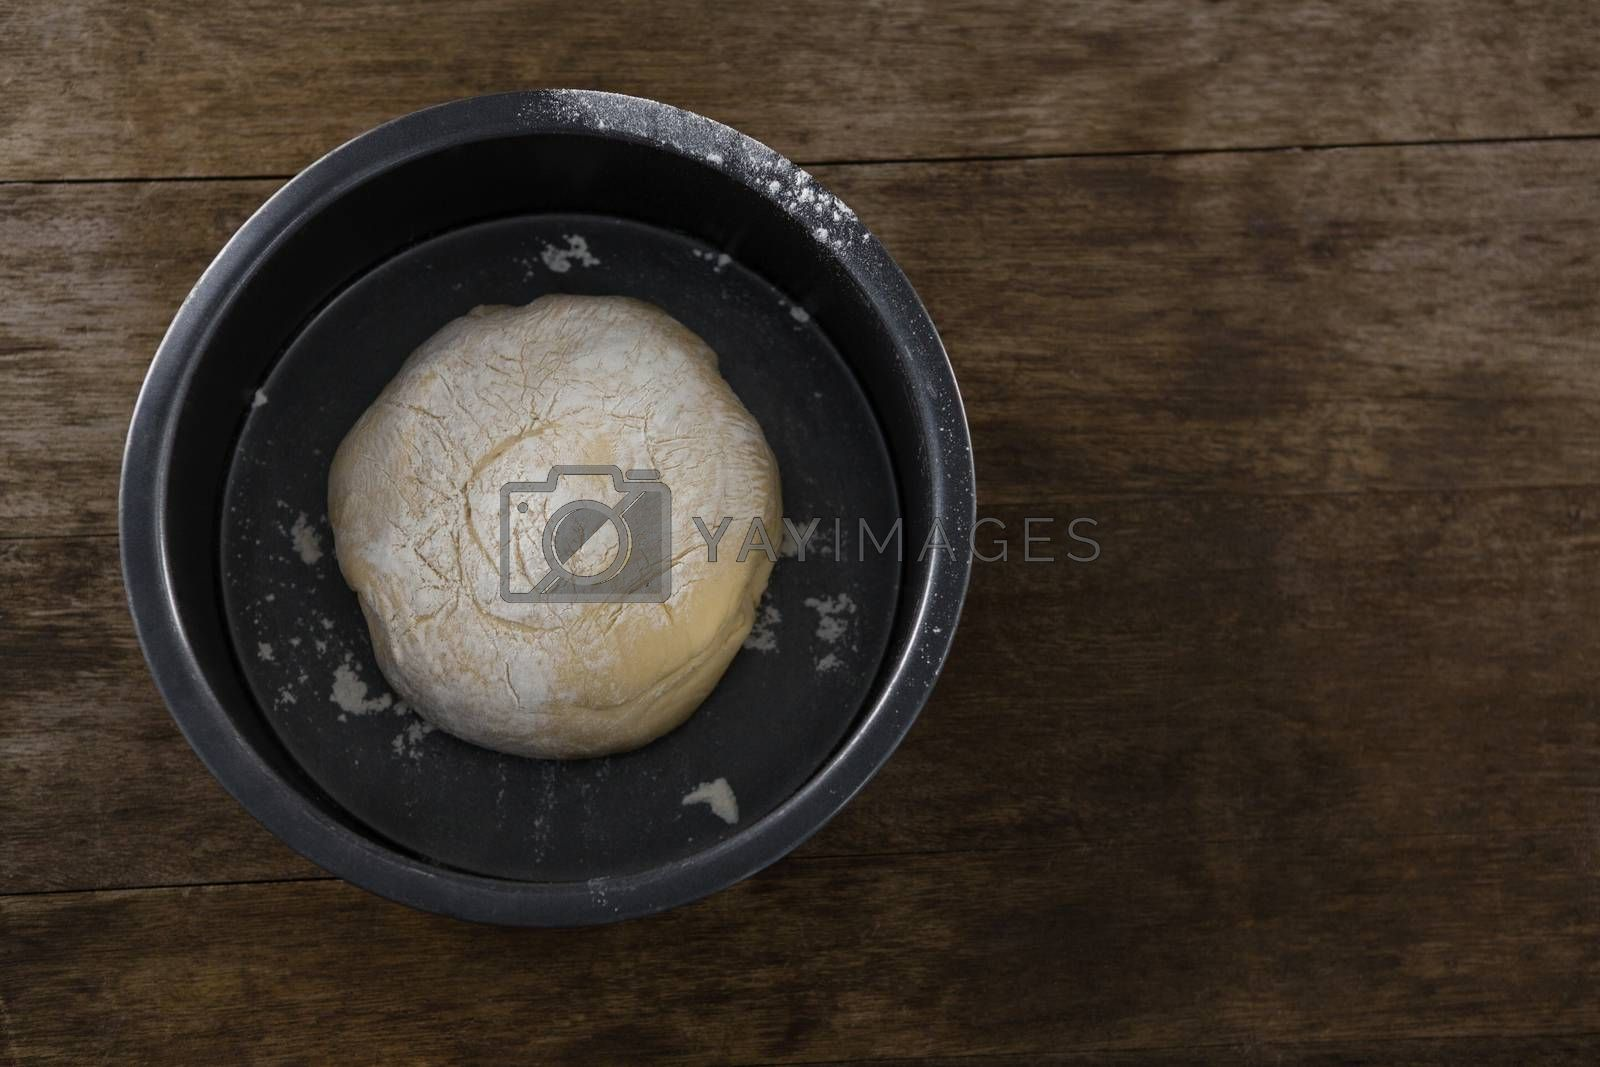 Kneaded dough placed in a bowl on a wooden table by Wavebreakmedia